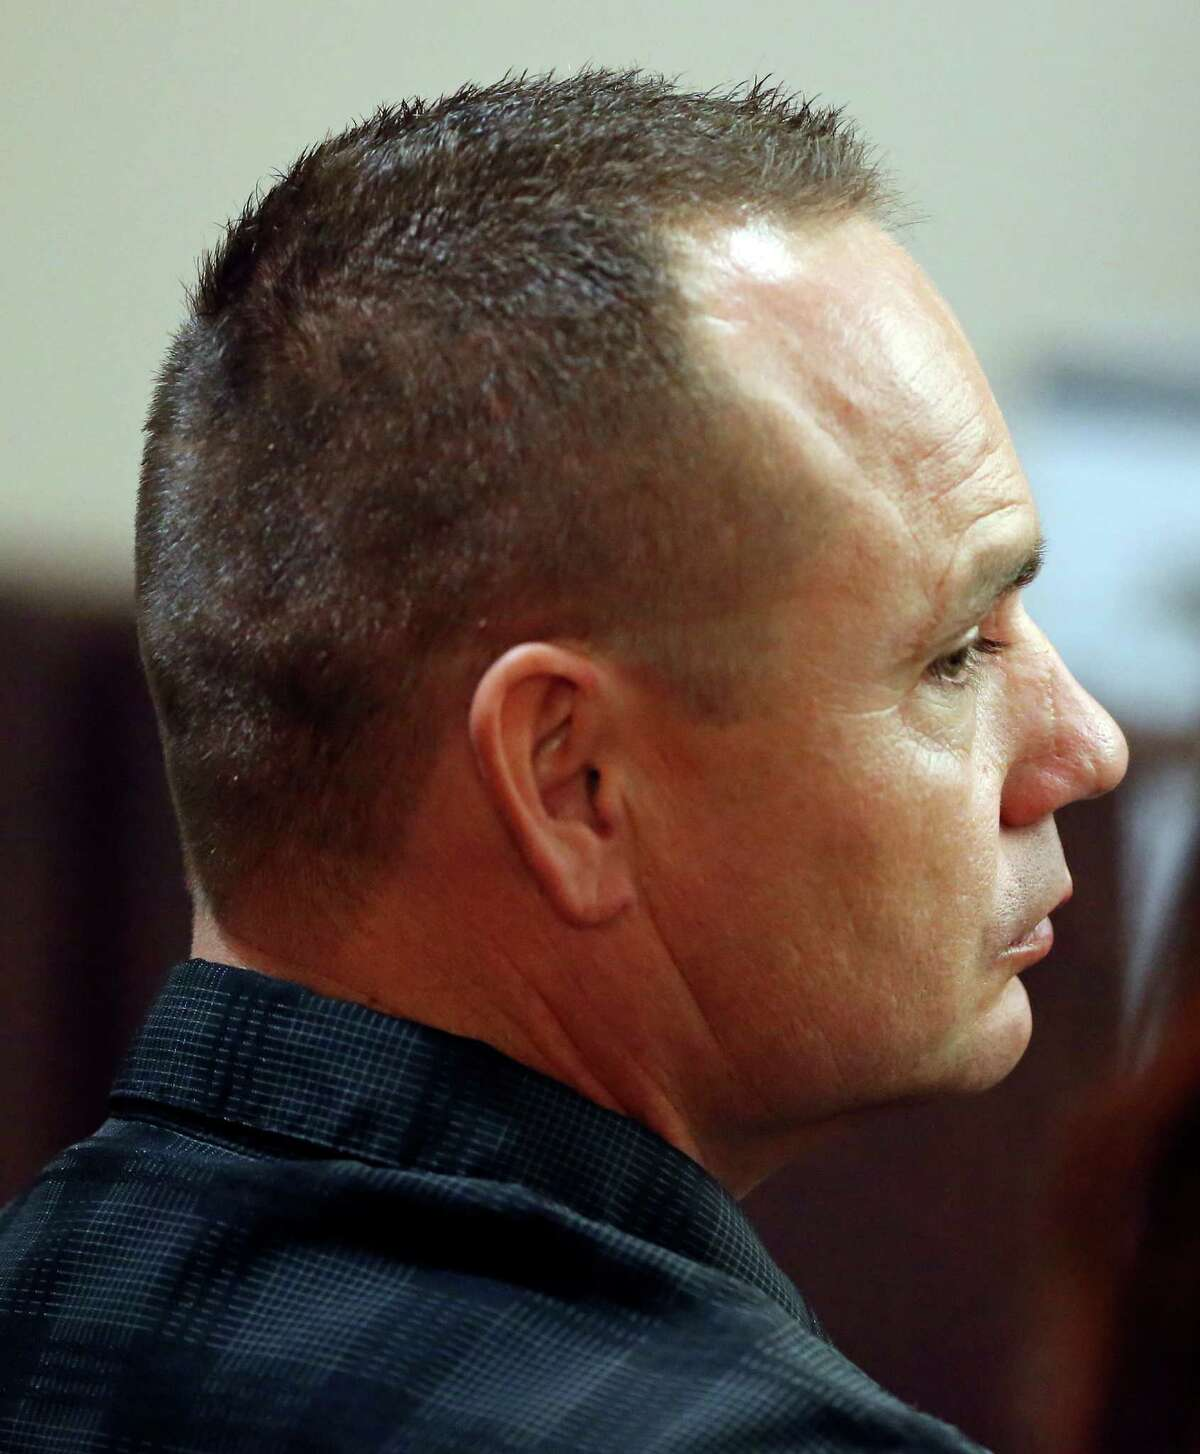 Former San Antonio police officer Jackie Len Neal waits for his sentencing in state District Judge Sid Harle's 226th state District Court Monday Nov. 9, 2015 at the Cadena-Reeves Justice Center. Neal was accused of raping a woman in the back of his patrol SUV in 2013. He was fined and sentenced to 14 months in a state jail facility as part of a plea agreement. Neal pleaded no contest to improper sexual activity with a person in custody. As part of the deal, he was fined $5,000 and agreed to surrender his peace officer certification.